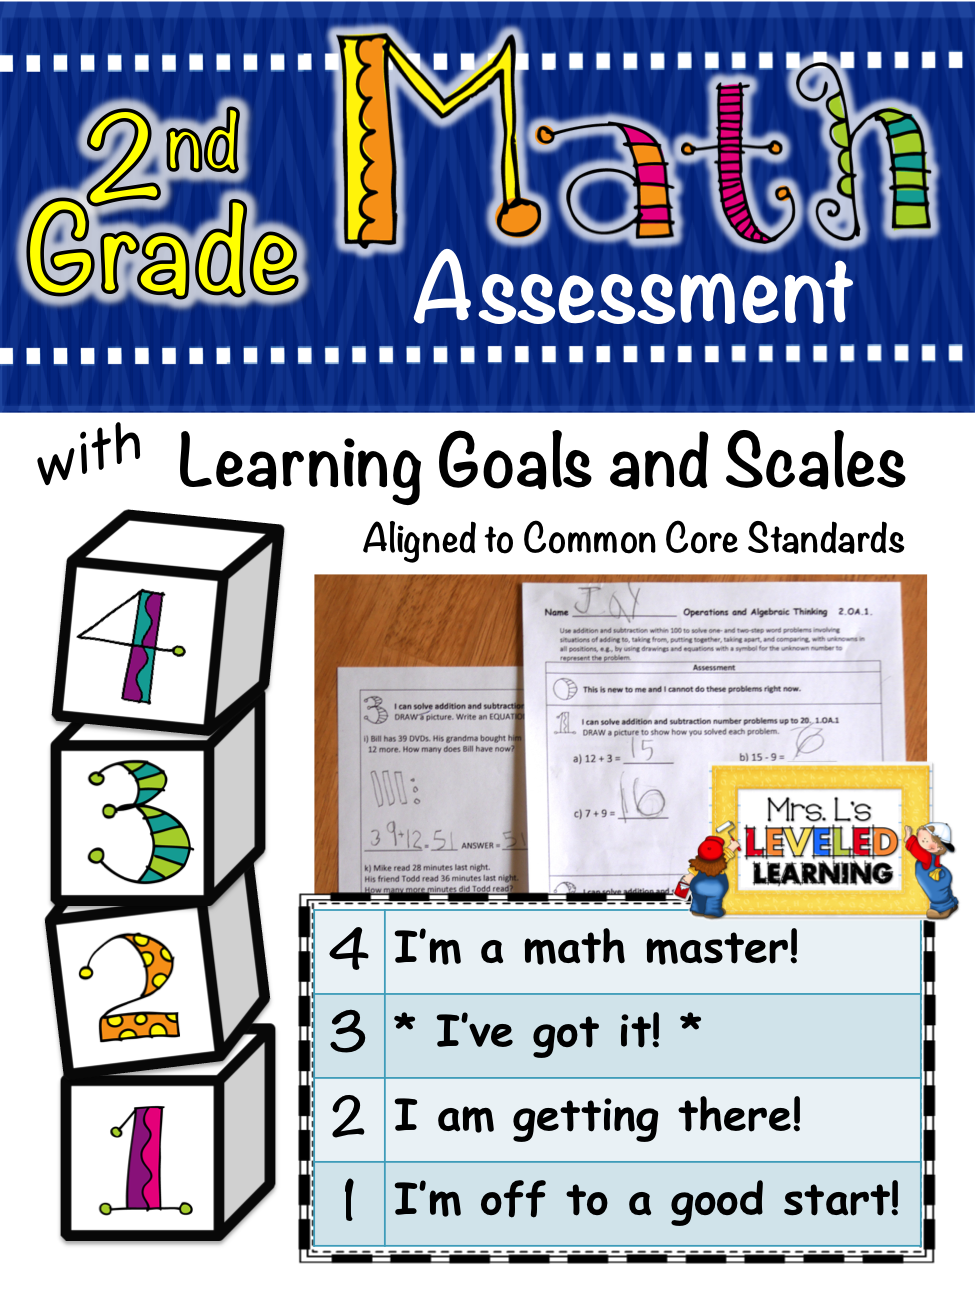 Mrs  L's Leveled Learning | Successful Differentiation with Learning